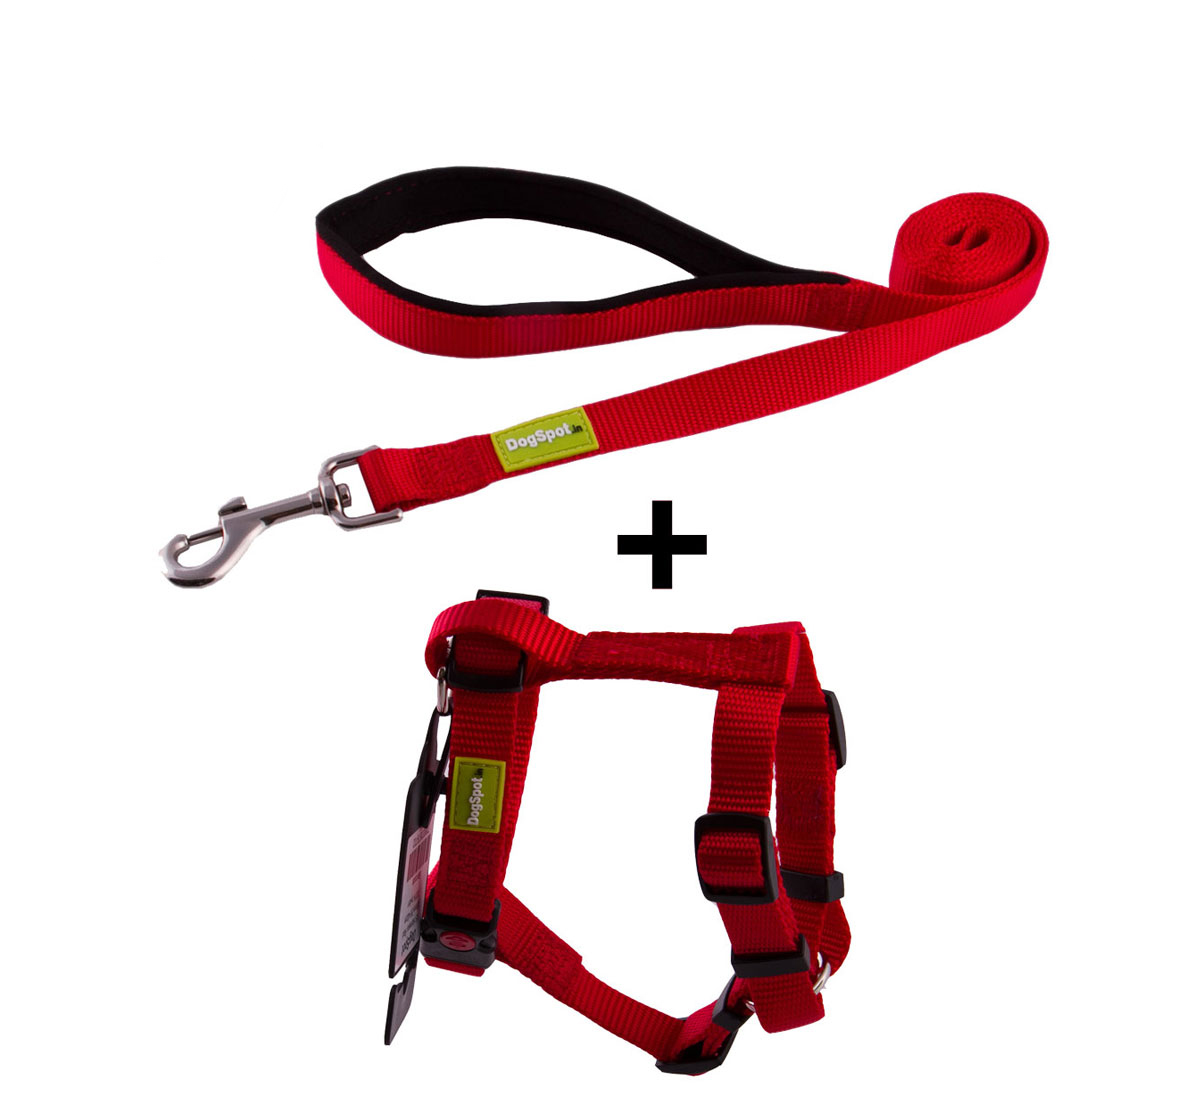 DogSpot Premium Leash and Harness Set Red 15 mm - Xsmall